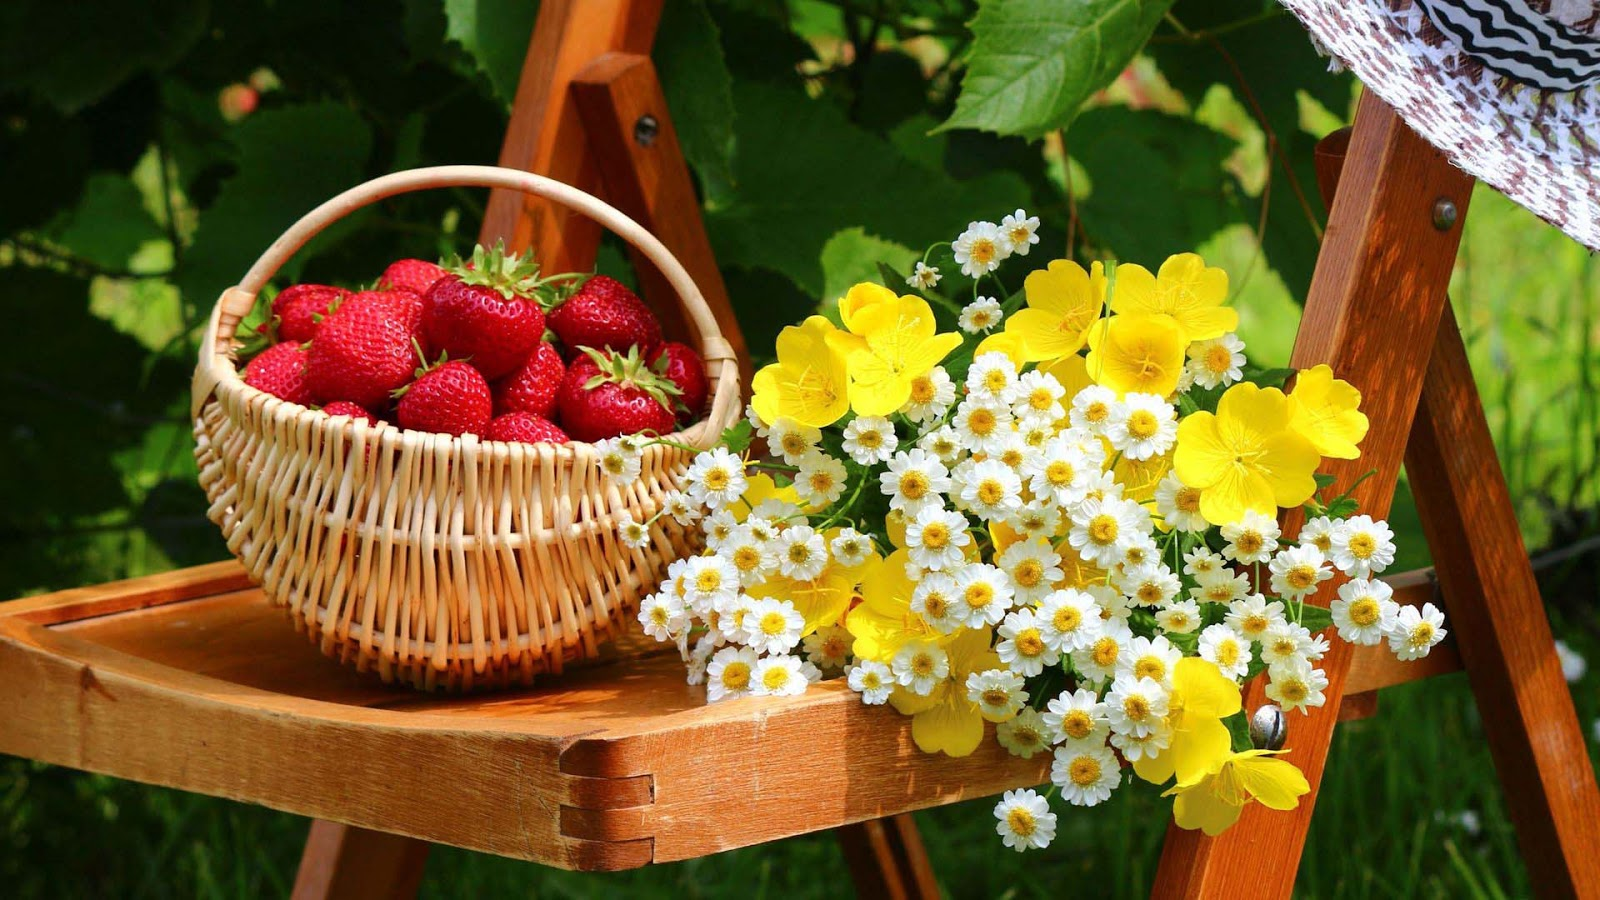 Flowers and fruits wallpapers - Mix Fruits Flowers Images